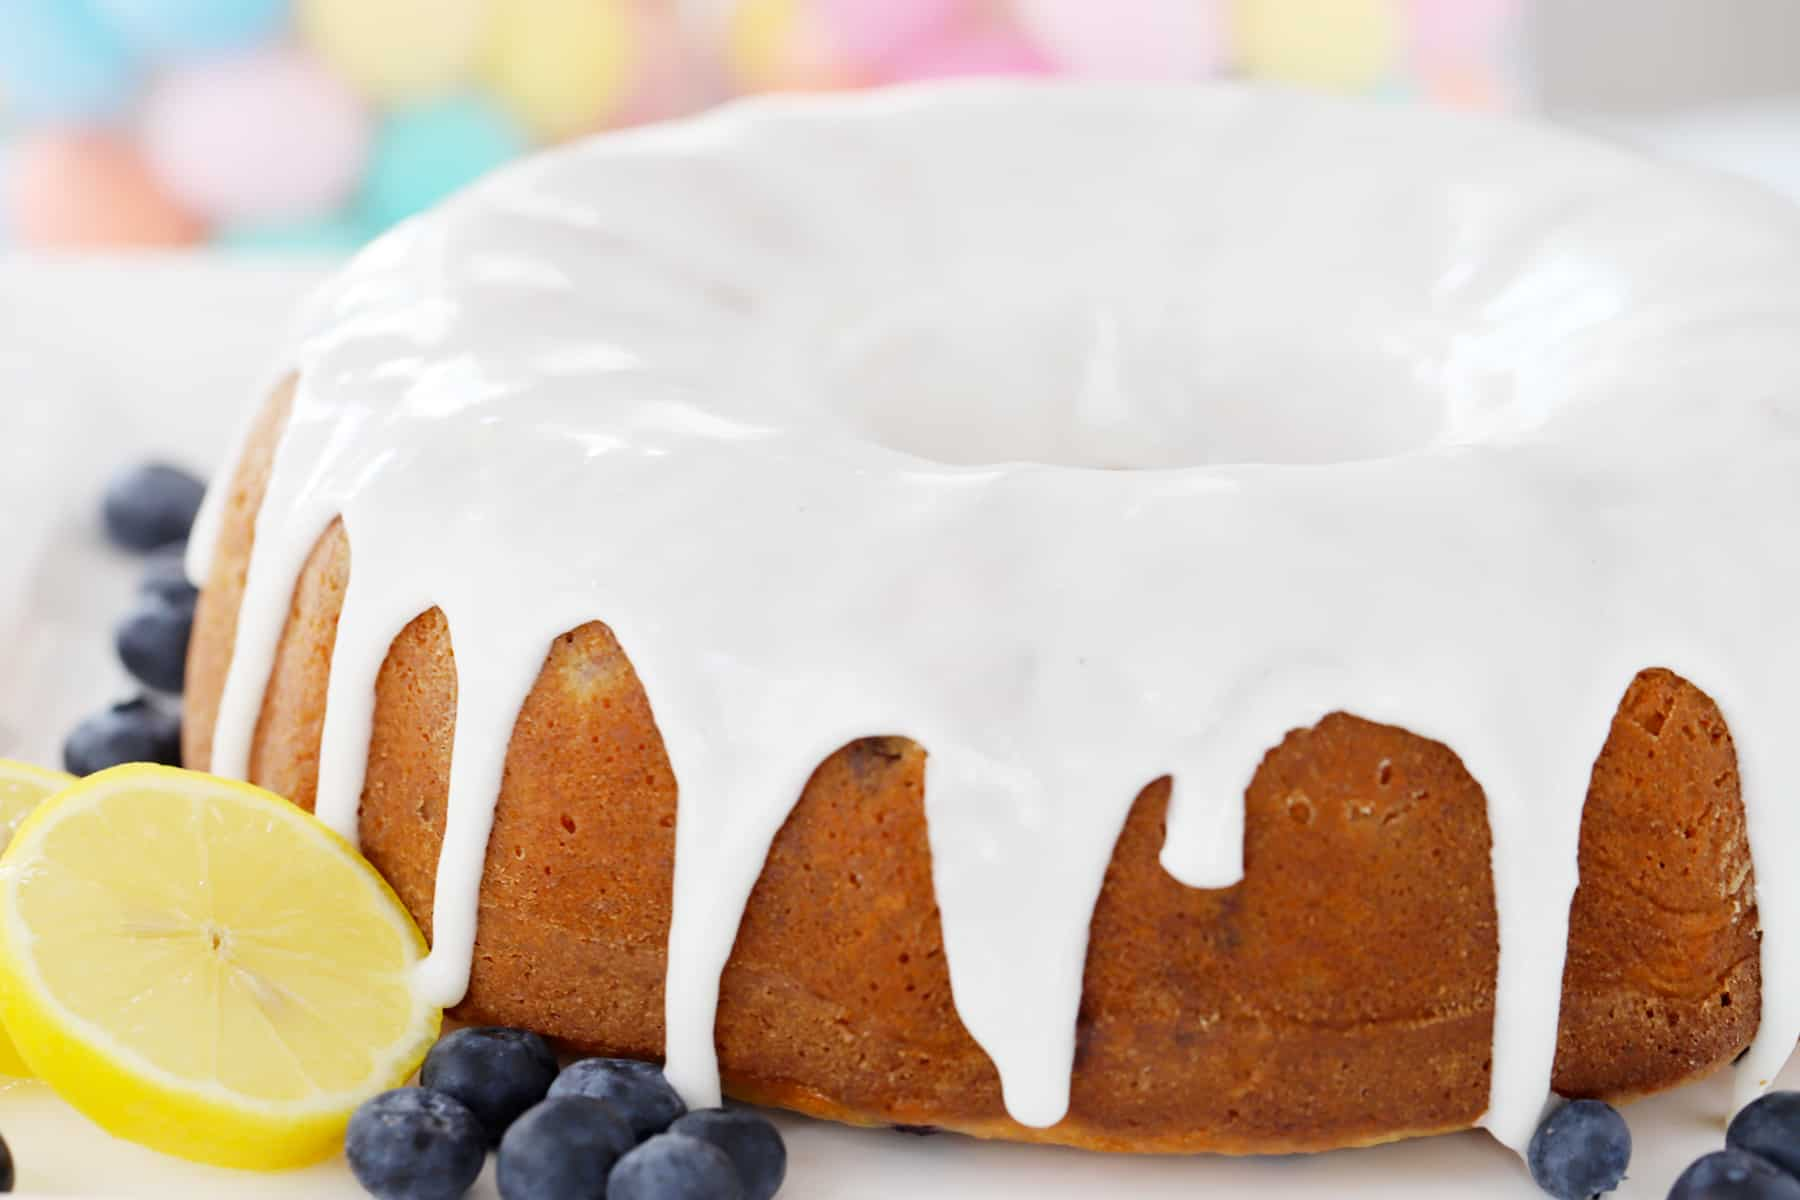 A whole glazed bundt cake on a white plate, garnished with fresh blueberries and lemon.